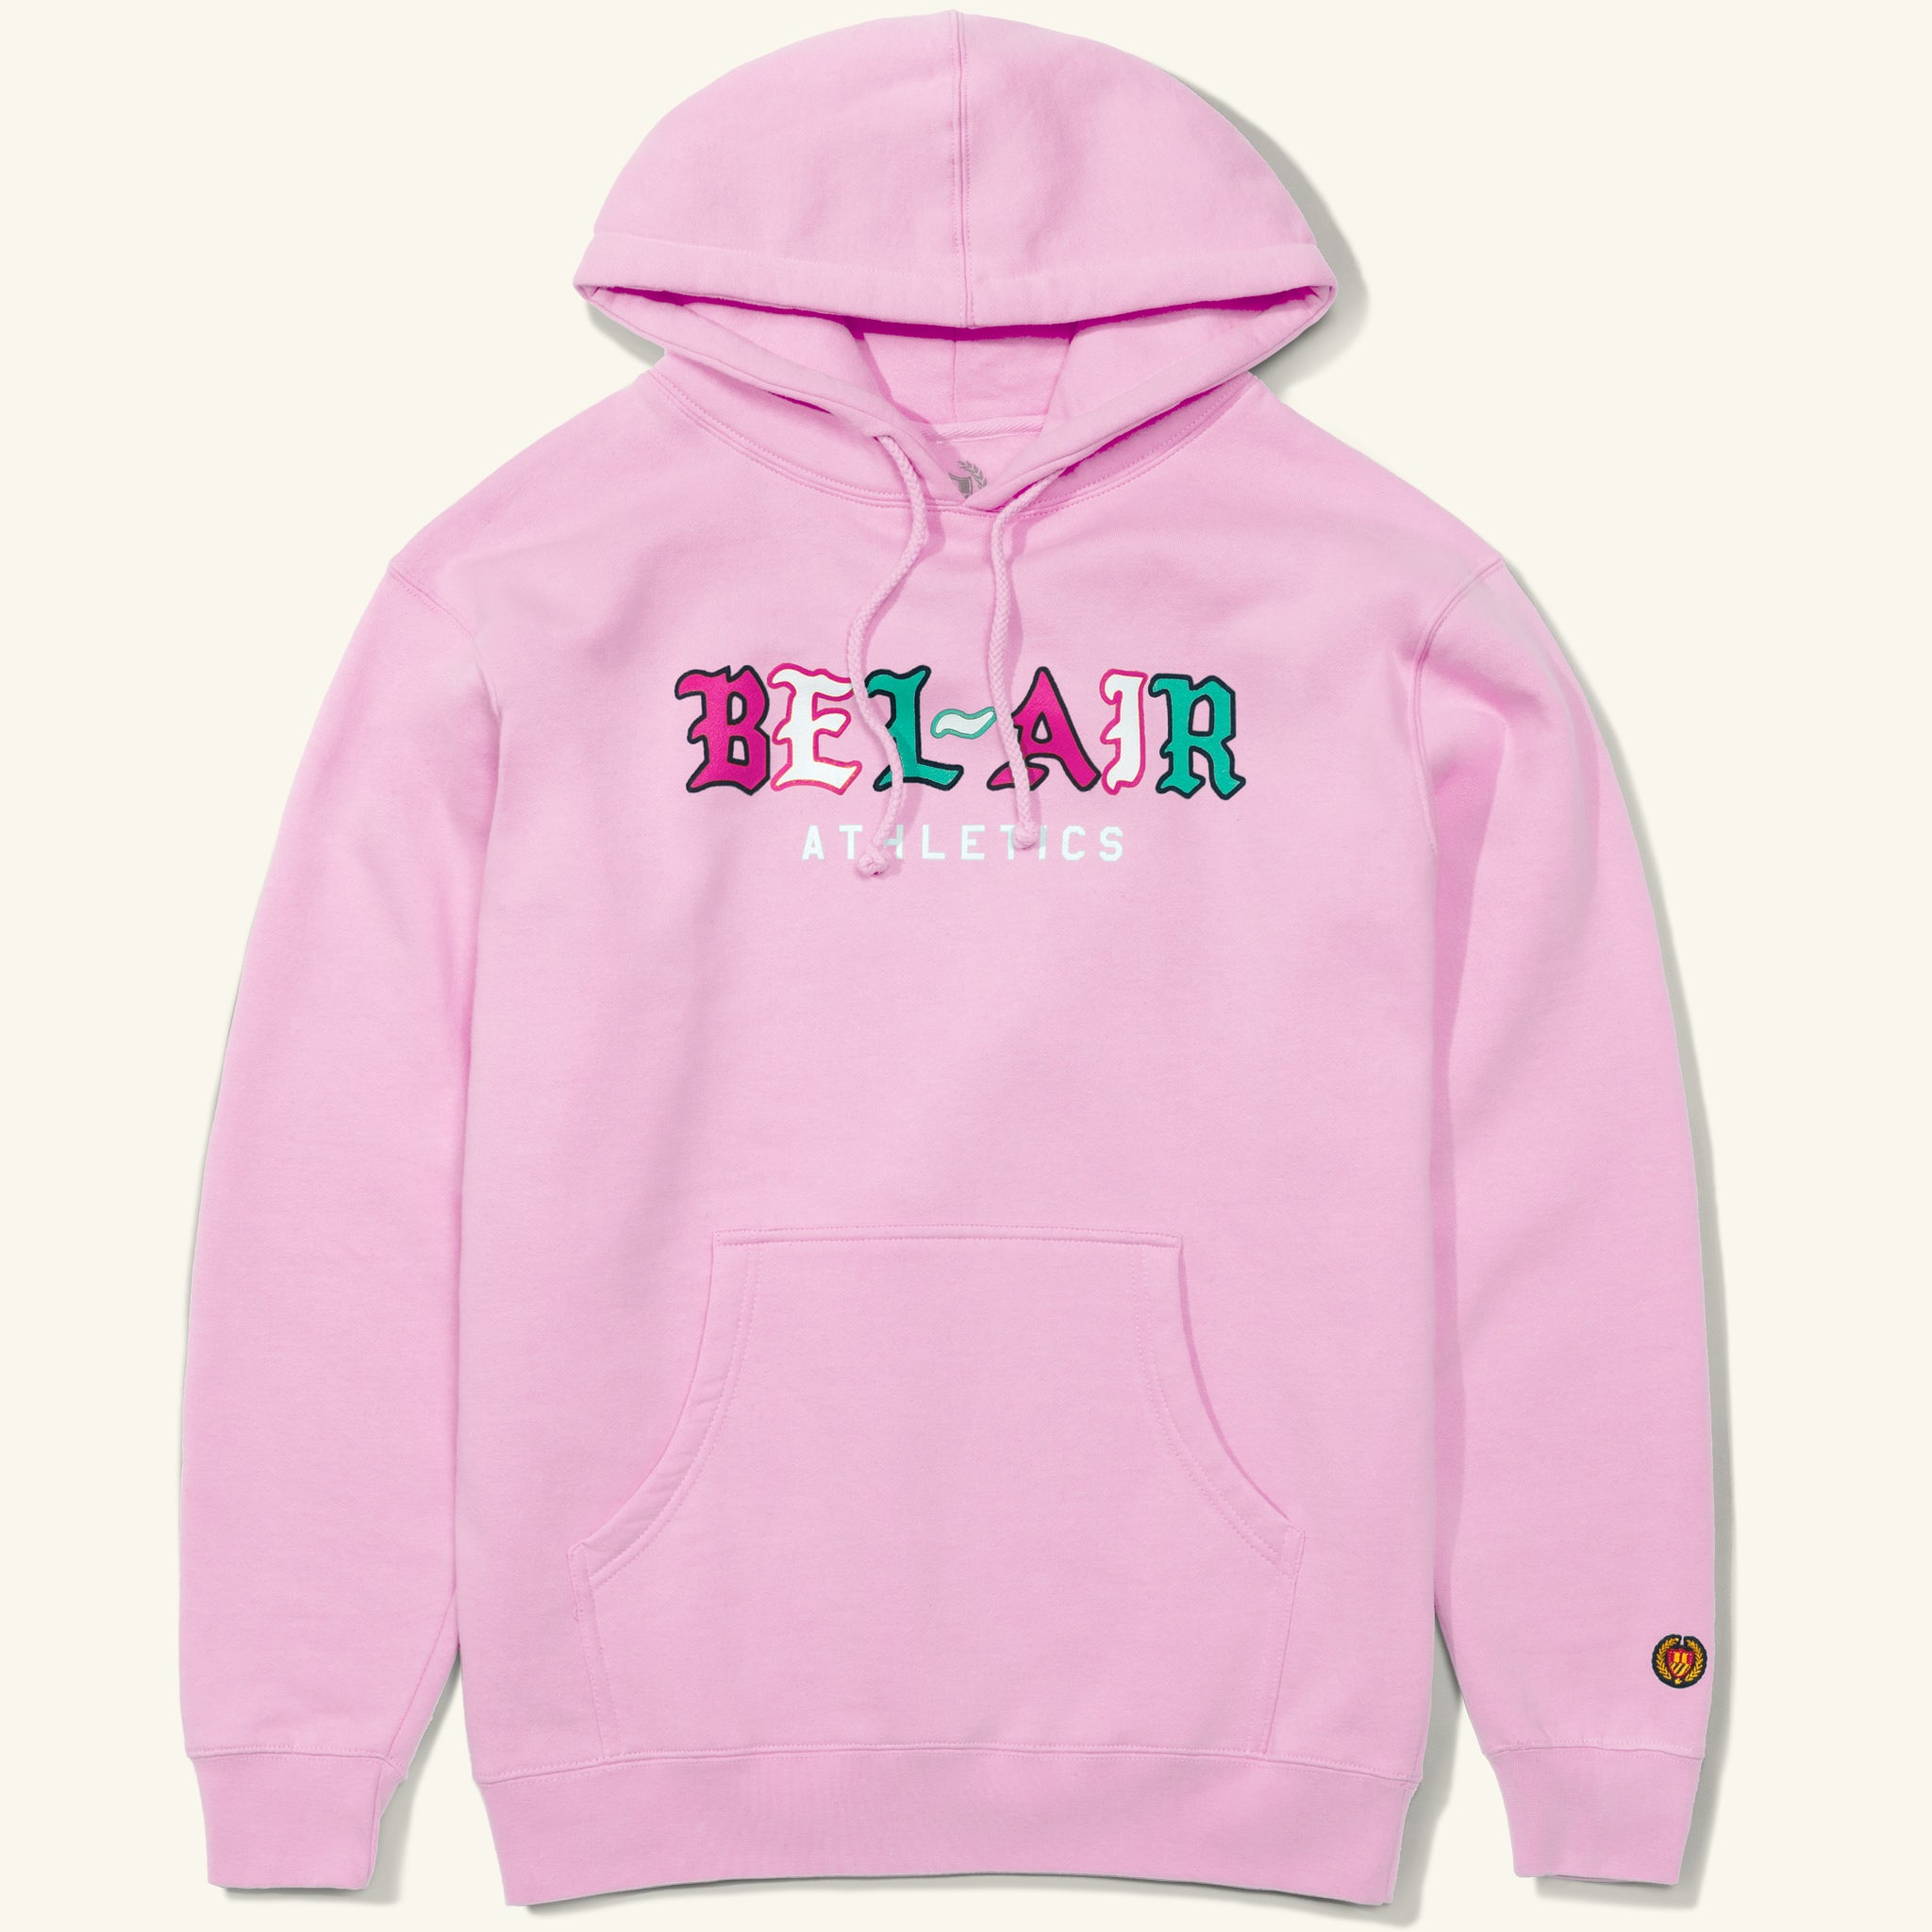 Gothic Mark Hooded Sweatshirt, Pink